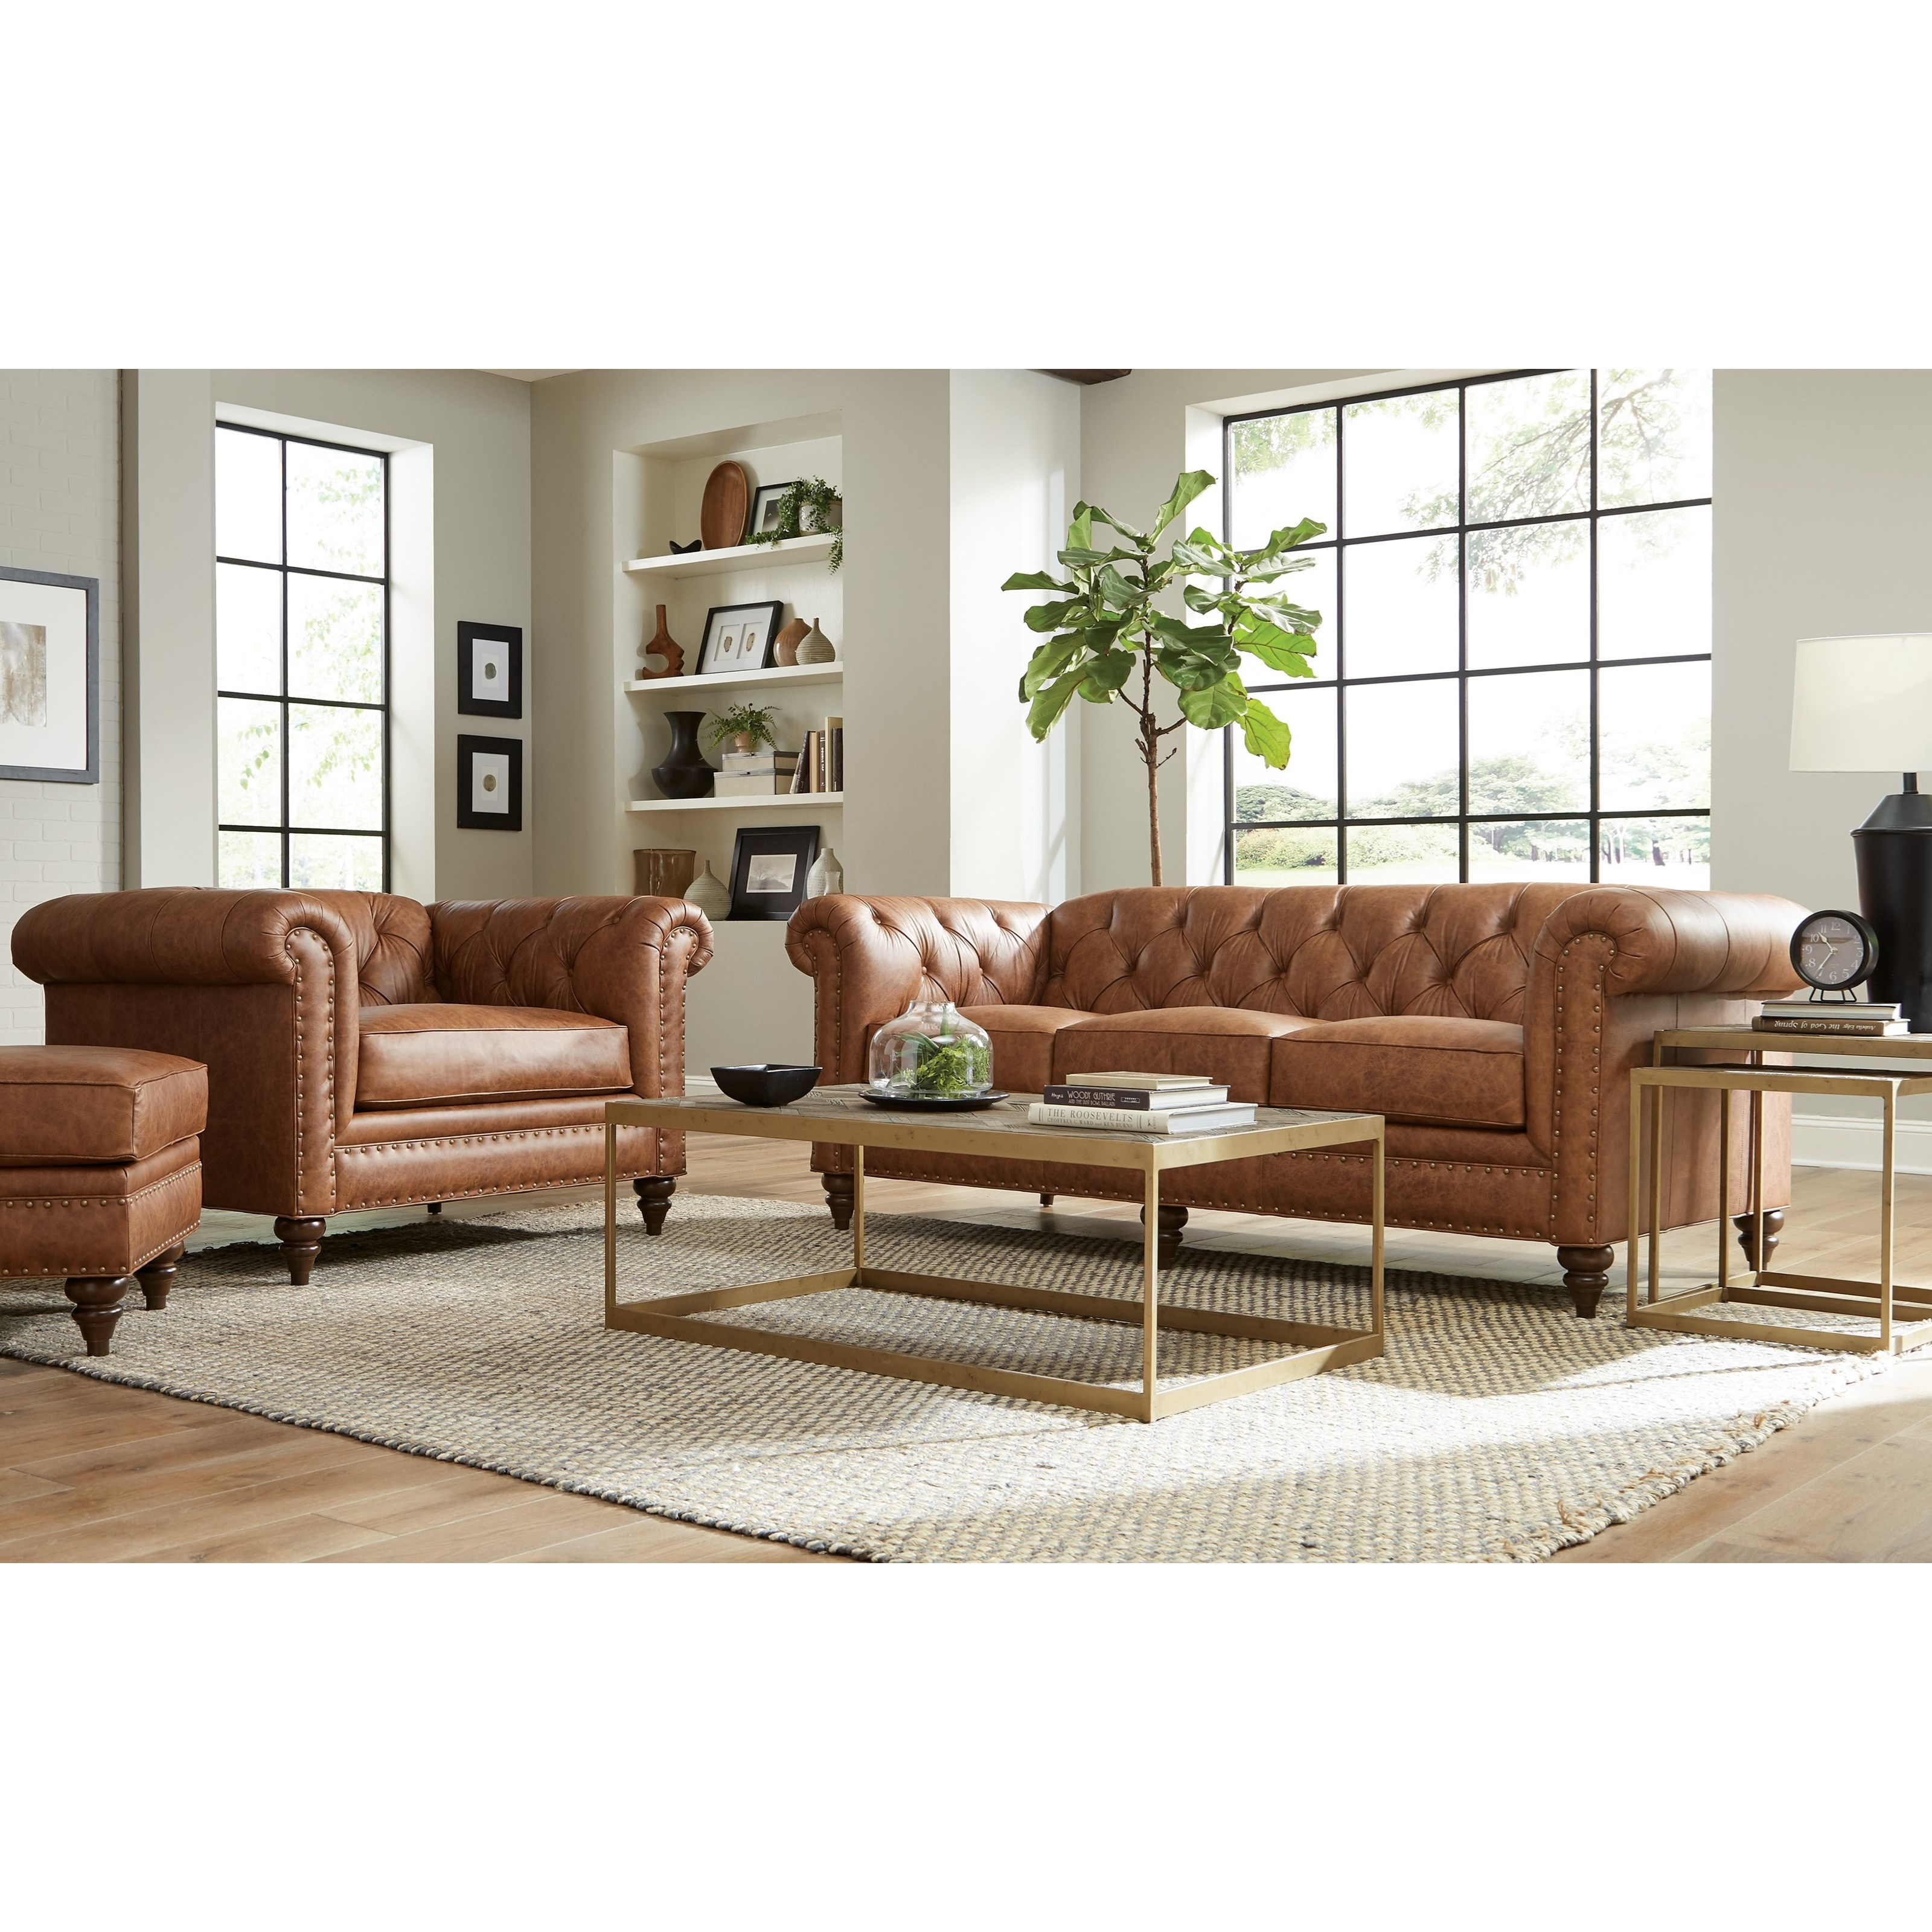 L743150 Living Room Group by Craftmaster at Baer's Furniture